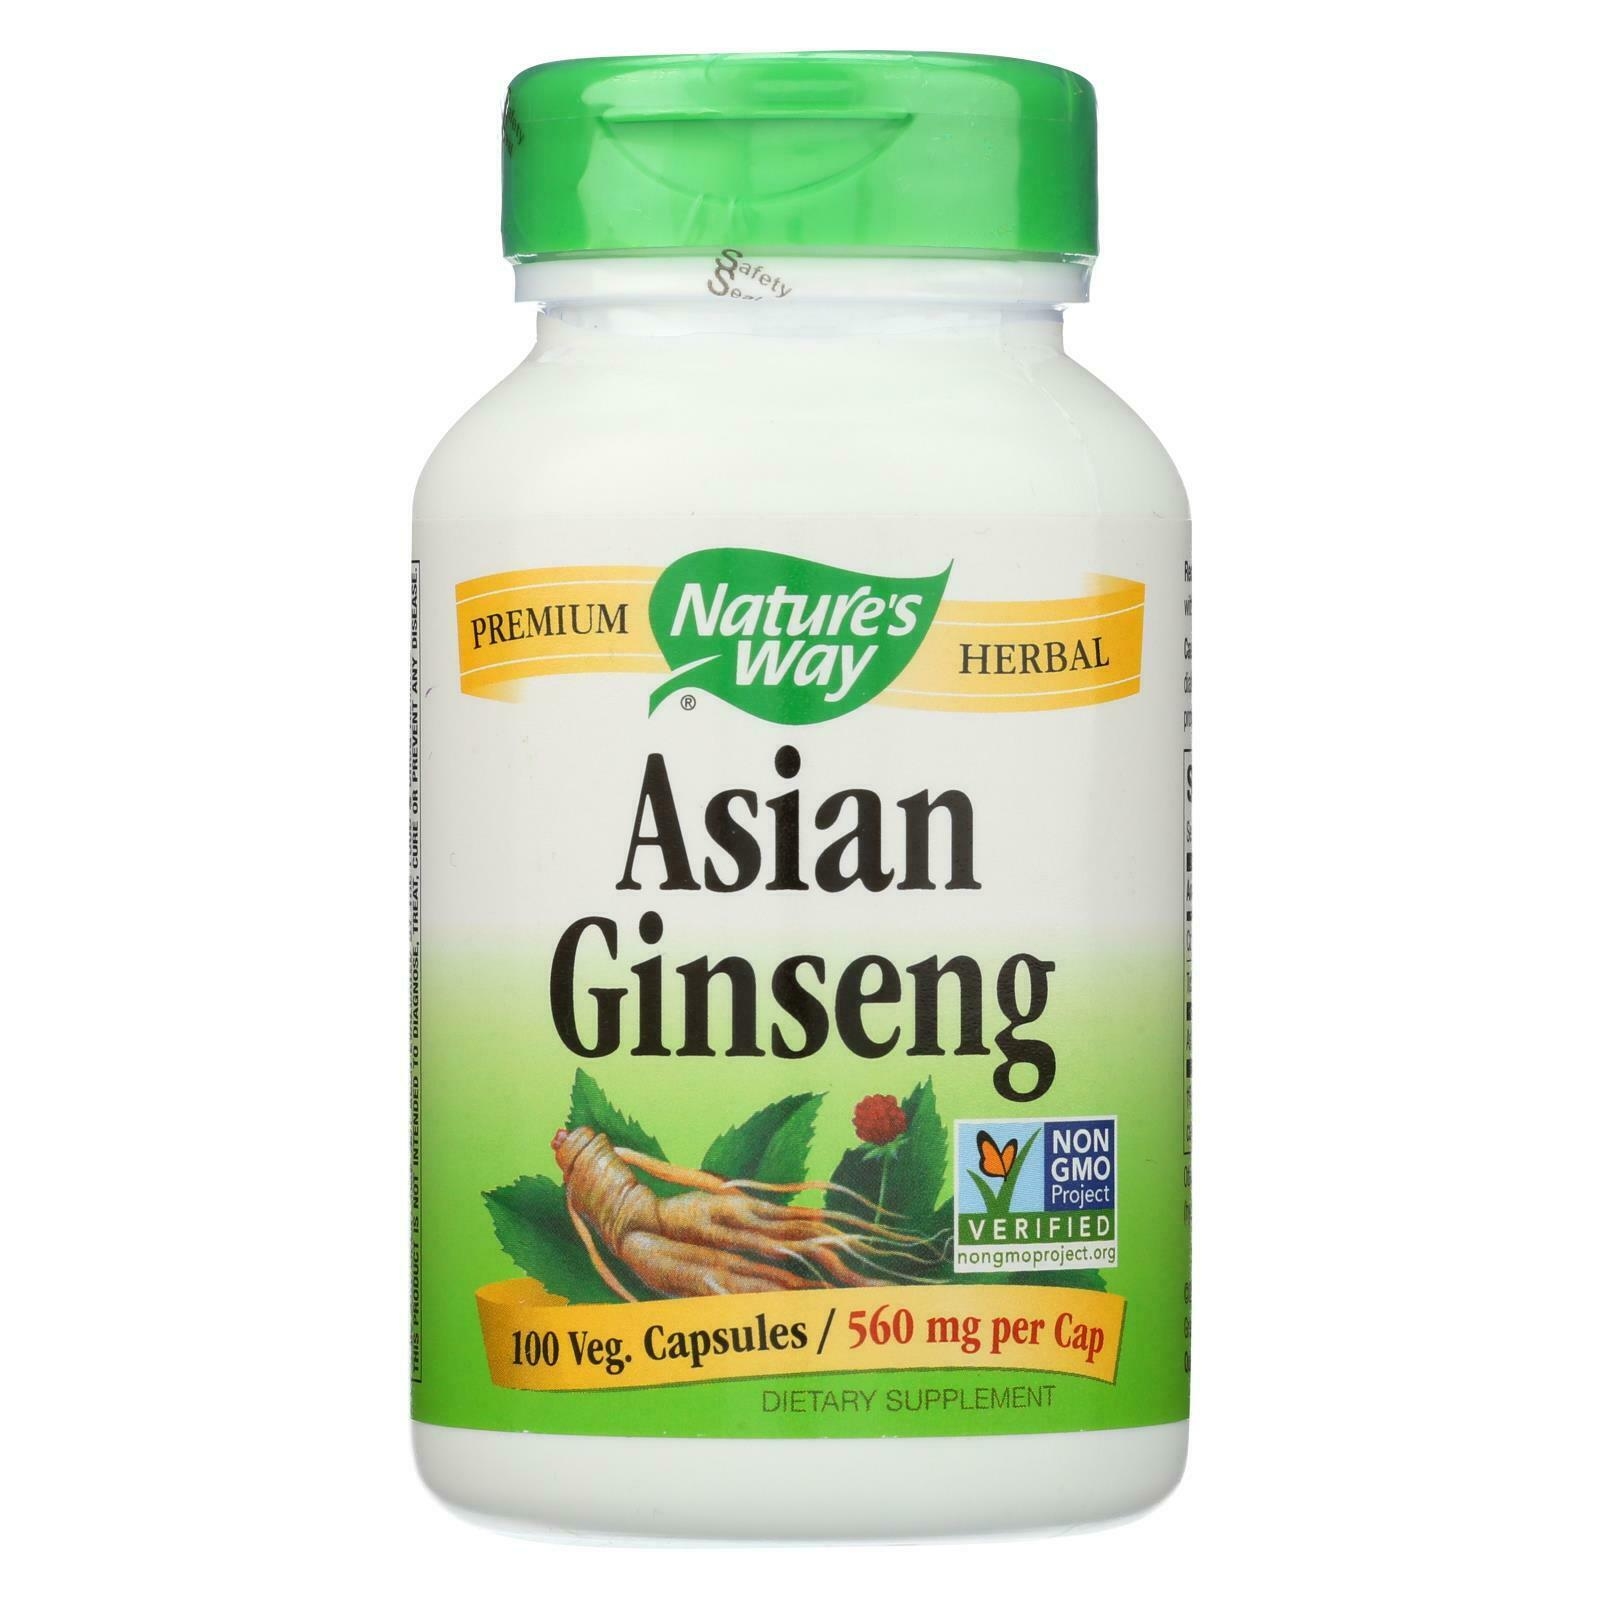 Nature's Way Korean Ginseng Root Chinese herb for vitality - 100 Capsules 1